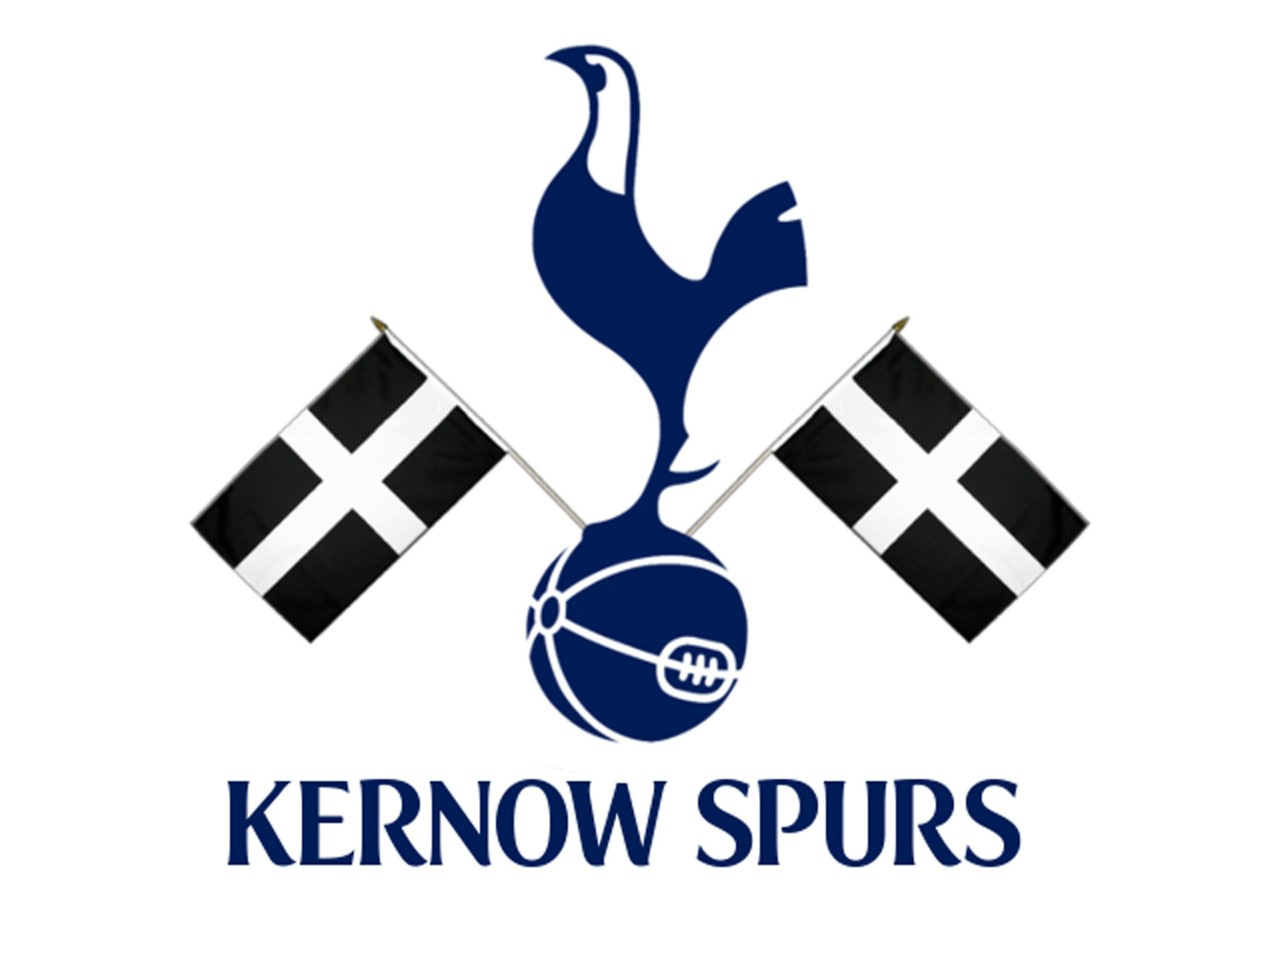 Cornwall Spurs Supporters Club